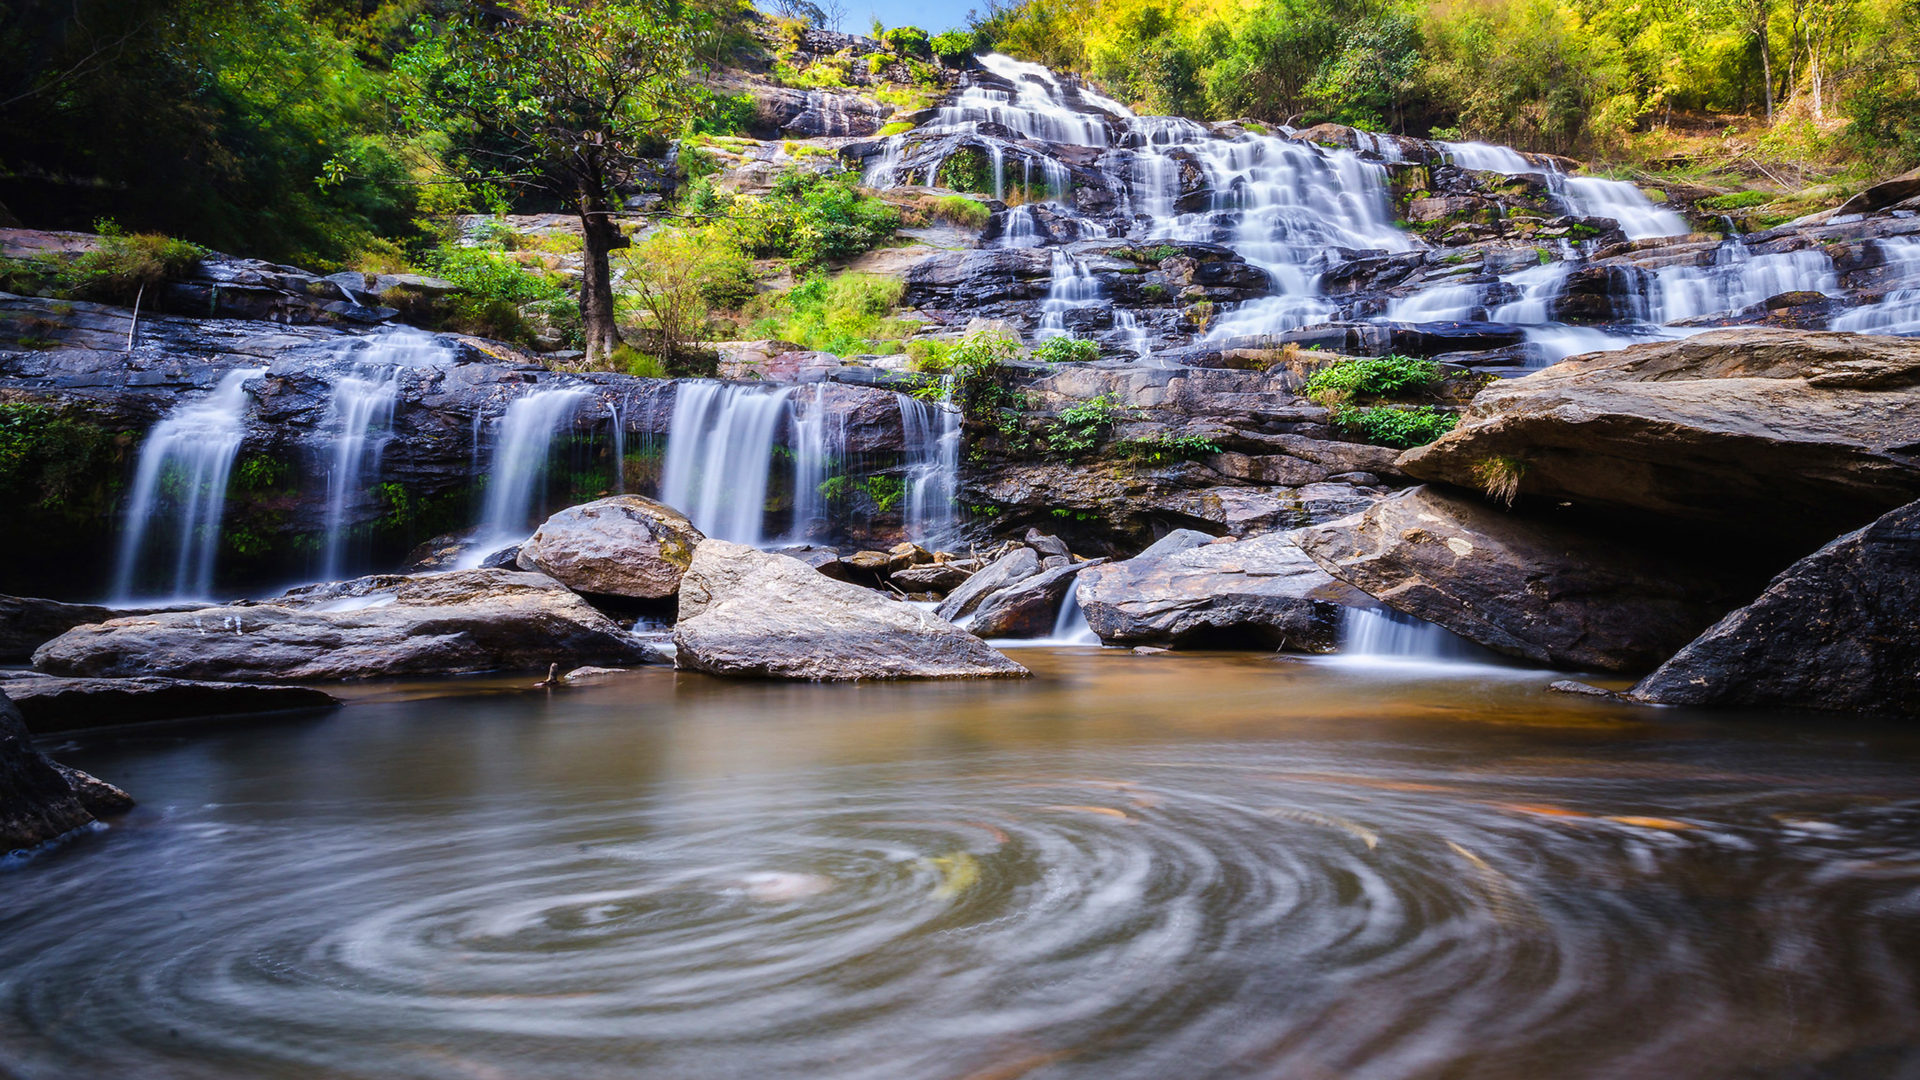 High Resolution Wallpaper Fall Mae Ya Waterfall Chiang Mai Thailand Desktop Hd